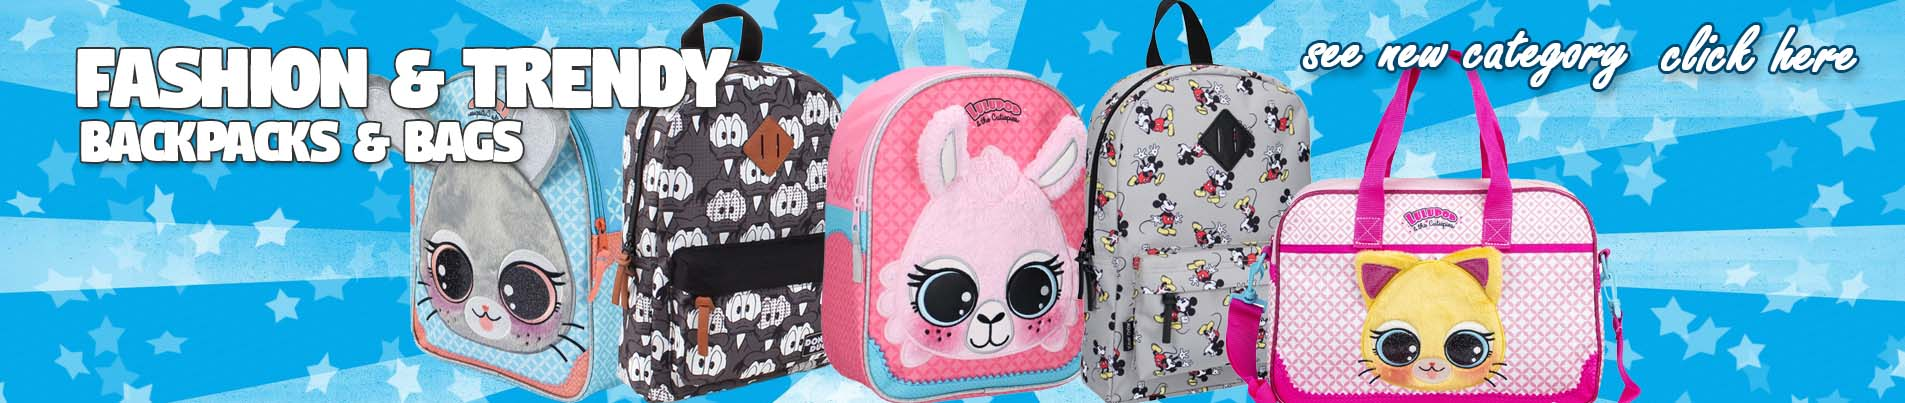 FASHION BACKPACKS AND BAGS FOR KIDS WHOLESALE